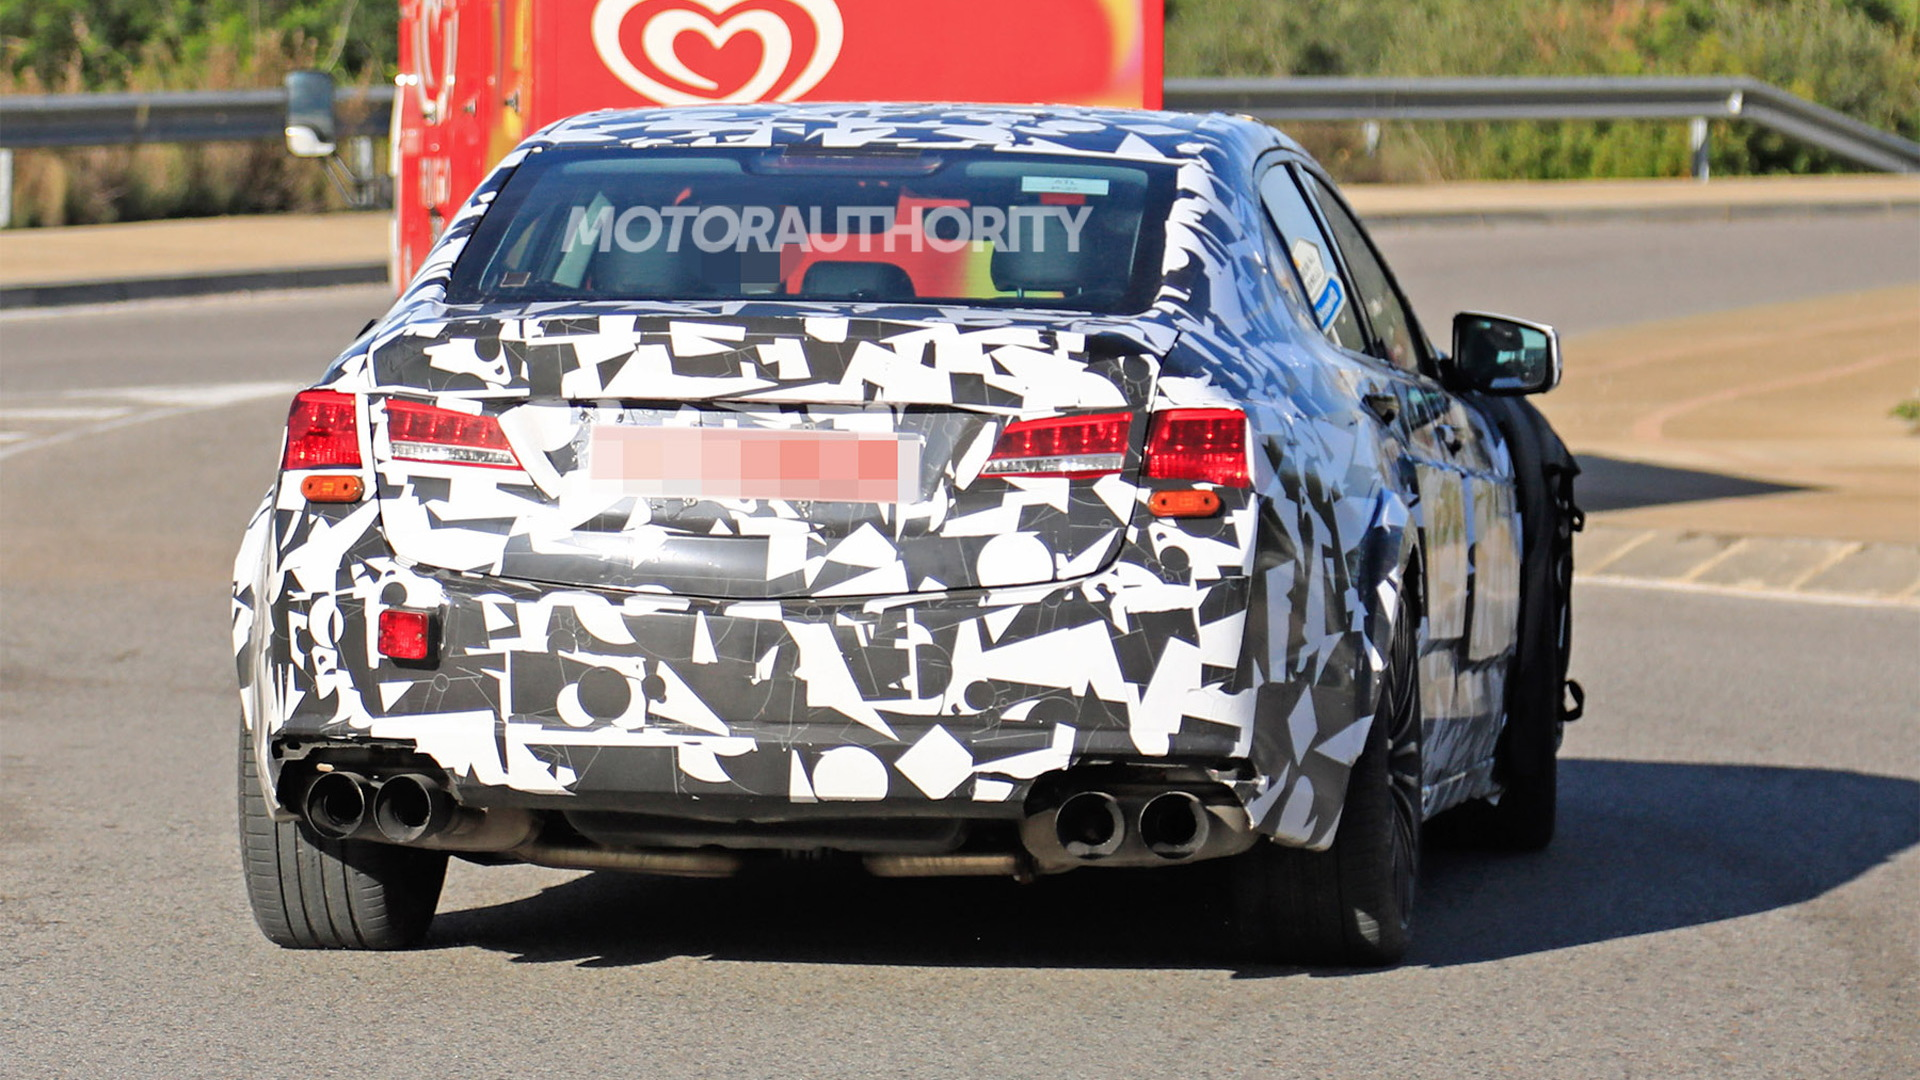 2020 Acura MDX Type S Spy Shots And Release Date Info >> 2020 Acura Mdx Type S Spy Shots And Release Date Info Upcoming New